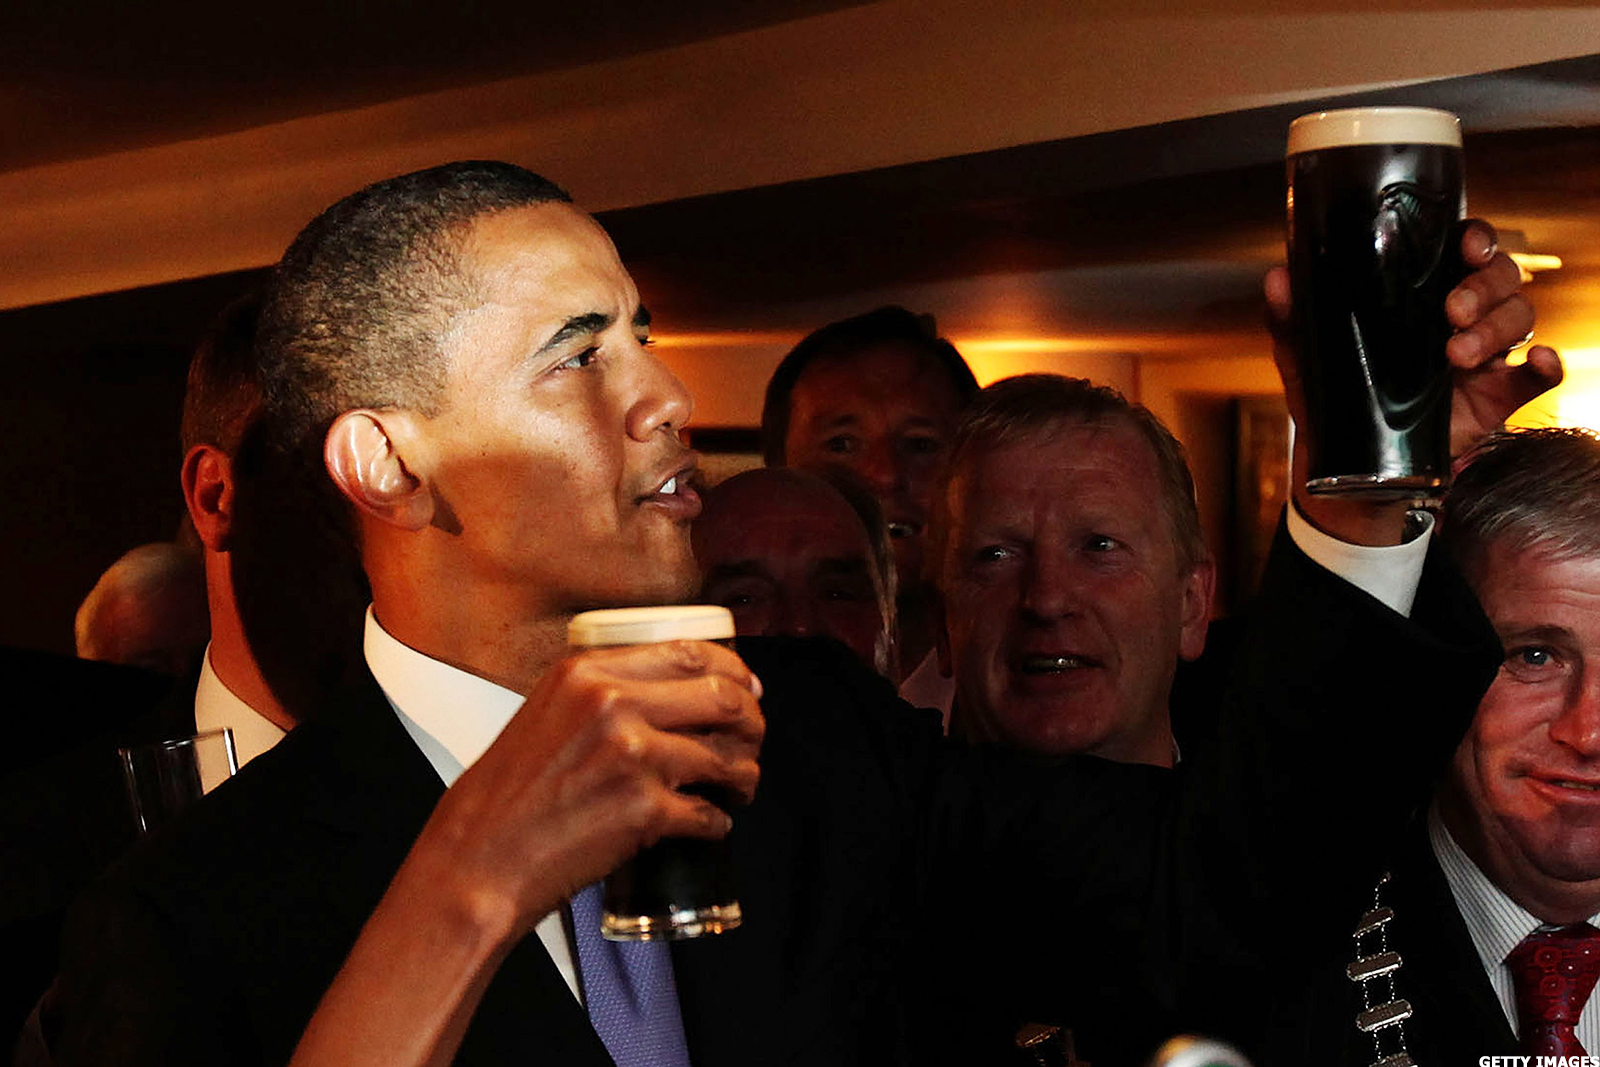 netflix u0026 39 s deal with president obama to make shows is super